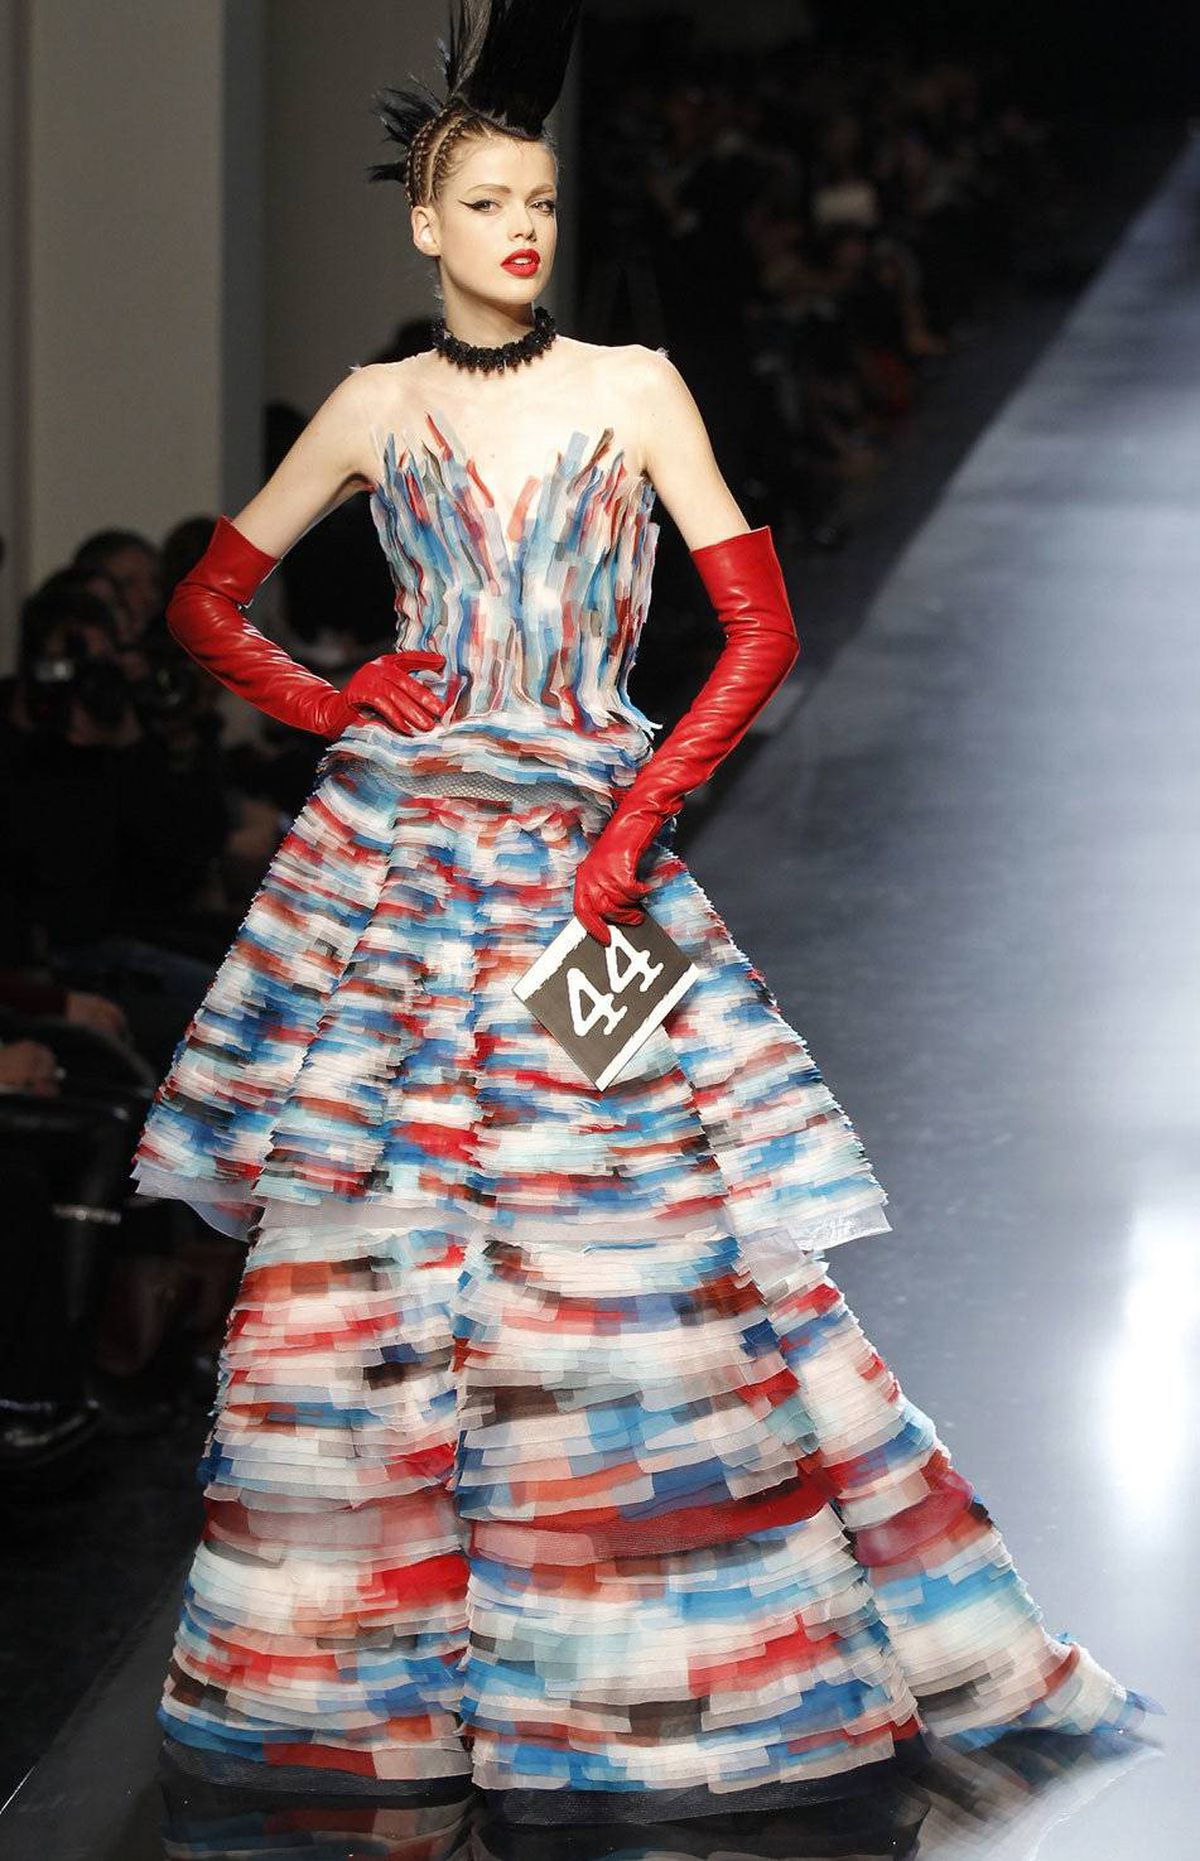 """Curatorial sound bite Gaultier: """"I'm not a fashionista but I was touched by Jean Paul Gaultier ... He is so discreet and humble. The first impression is that he's an enfant terrible, but he's more than that. He's more than Breton stripes and corsets."""" -- Natalie Bondil"""